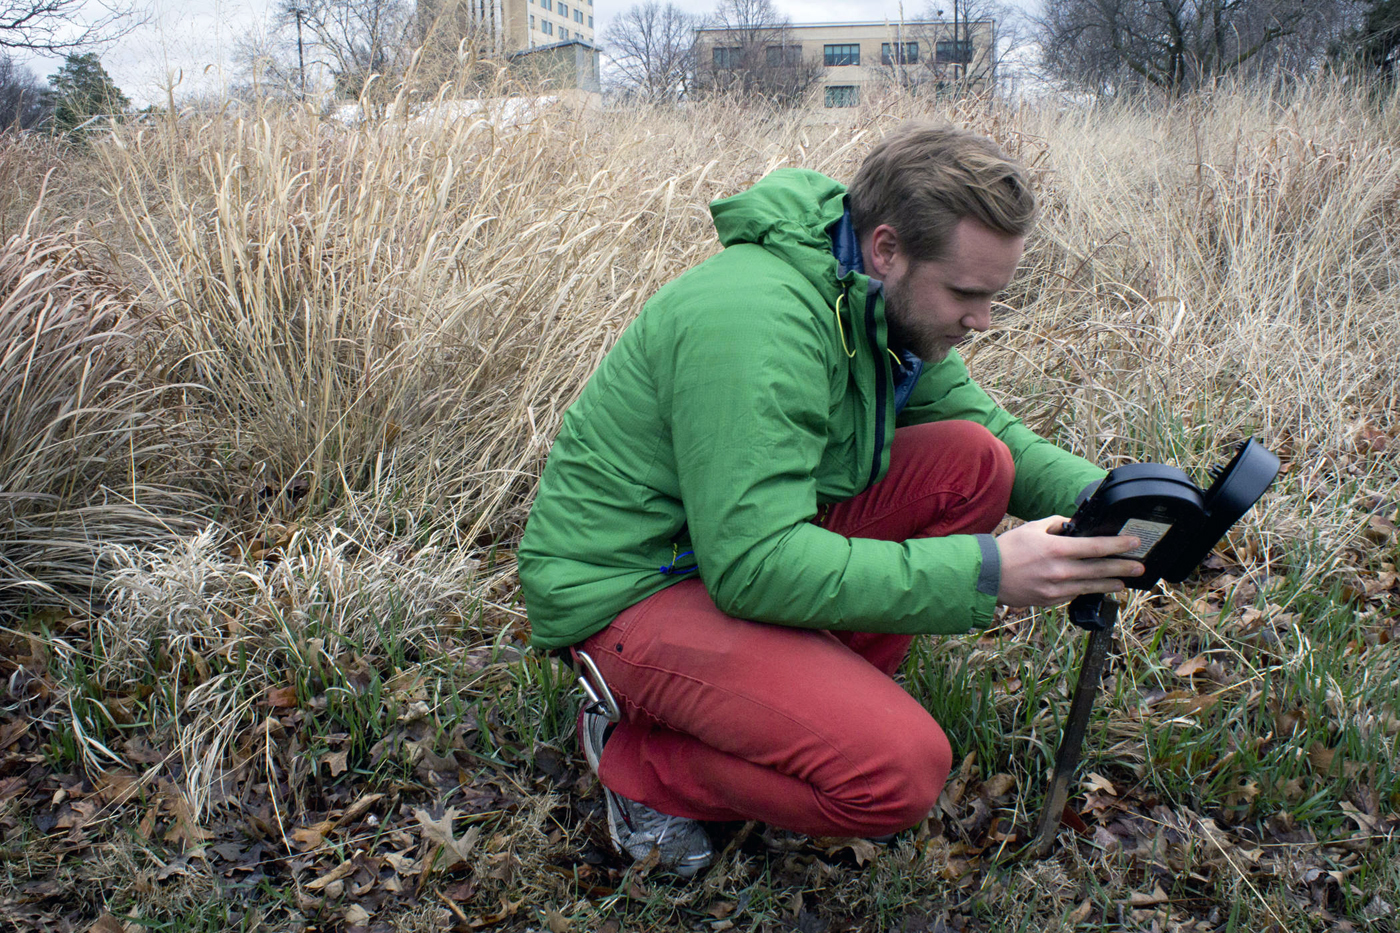 Peter Stegen, a senior fisheries and wildlife major, sets up a camera trap as part of his project for the Digital Imaging and Storytelling course.